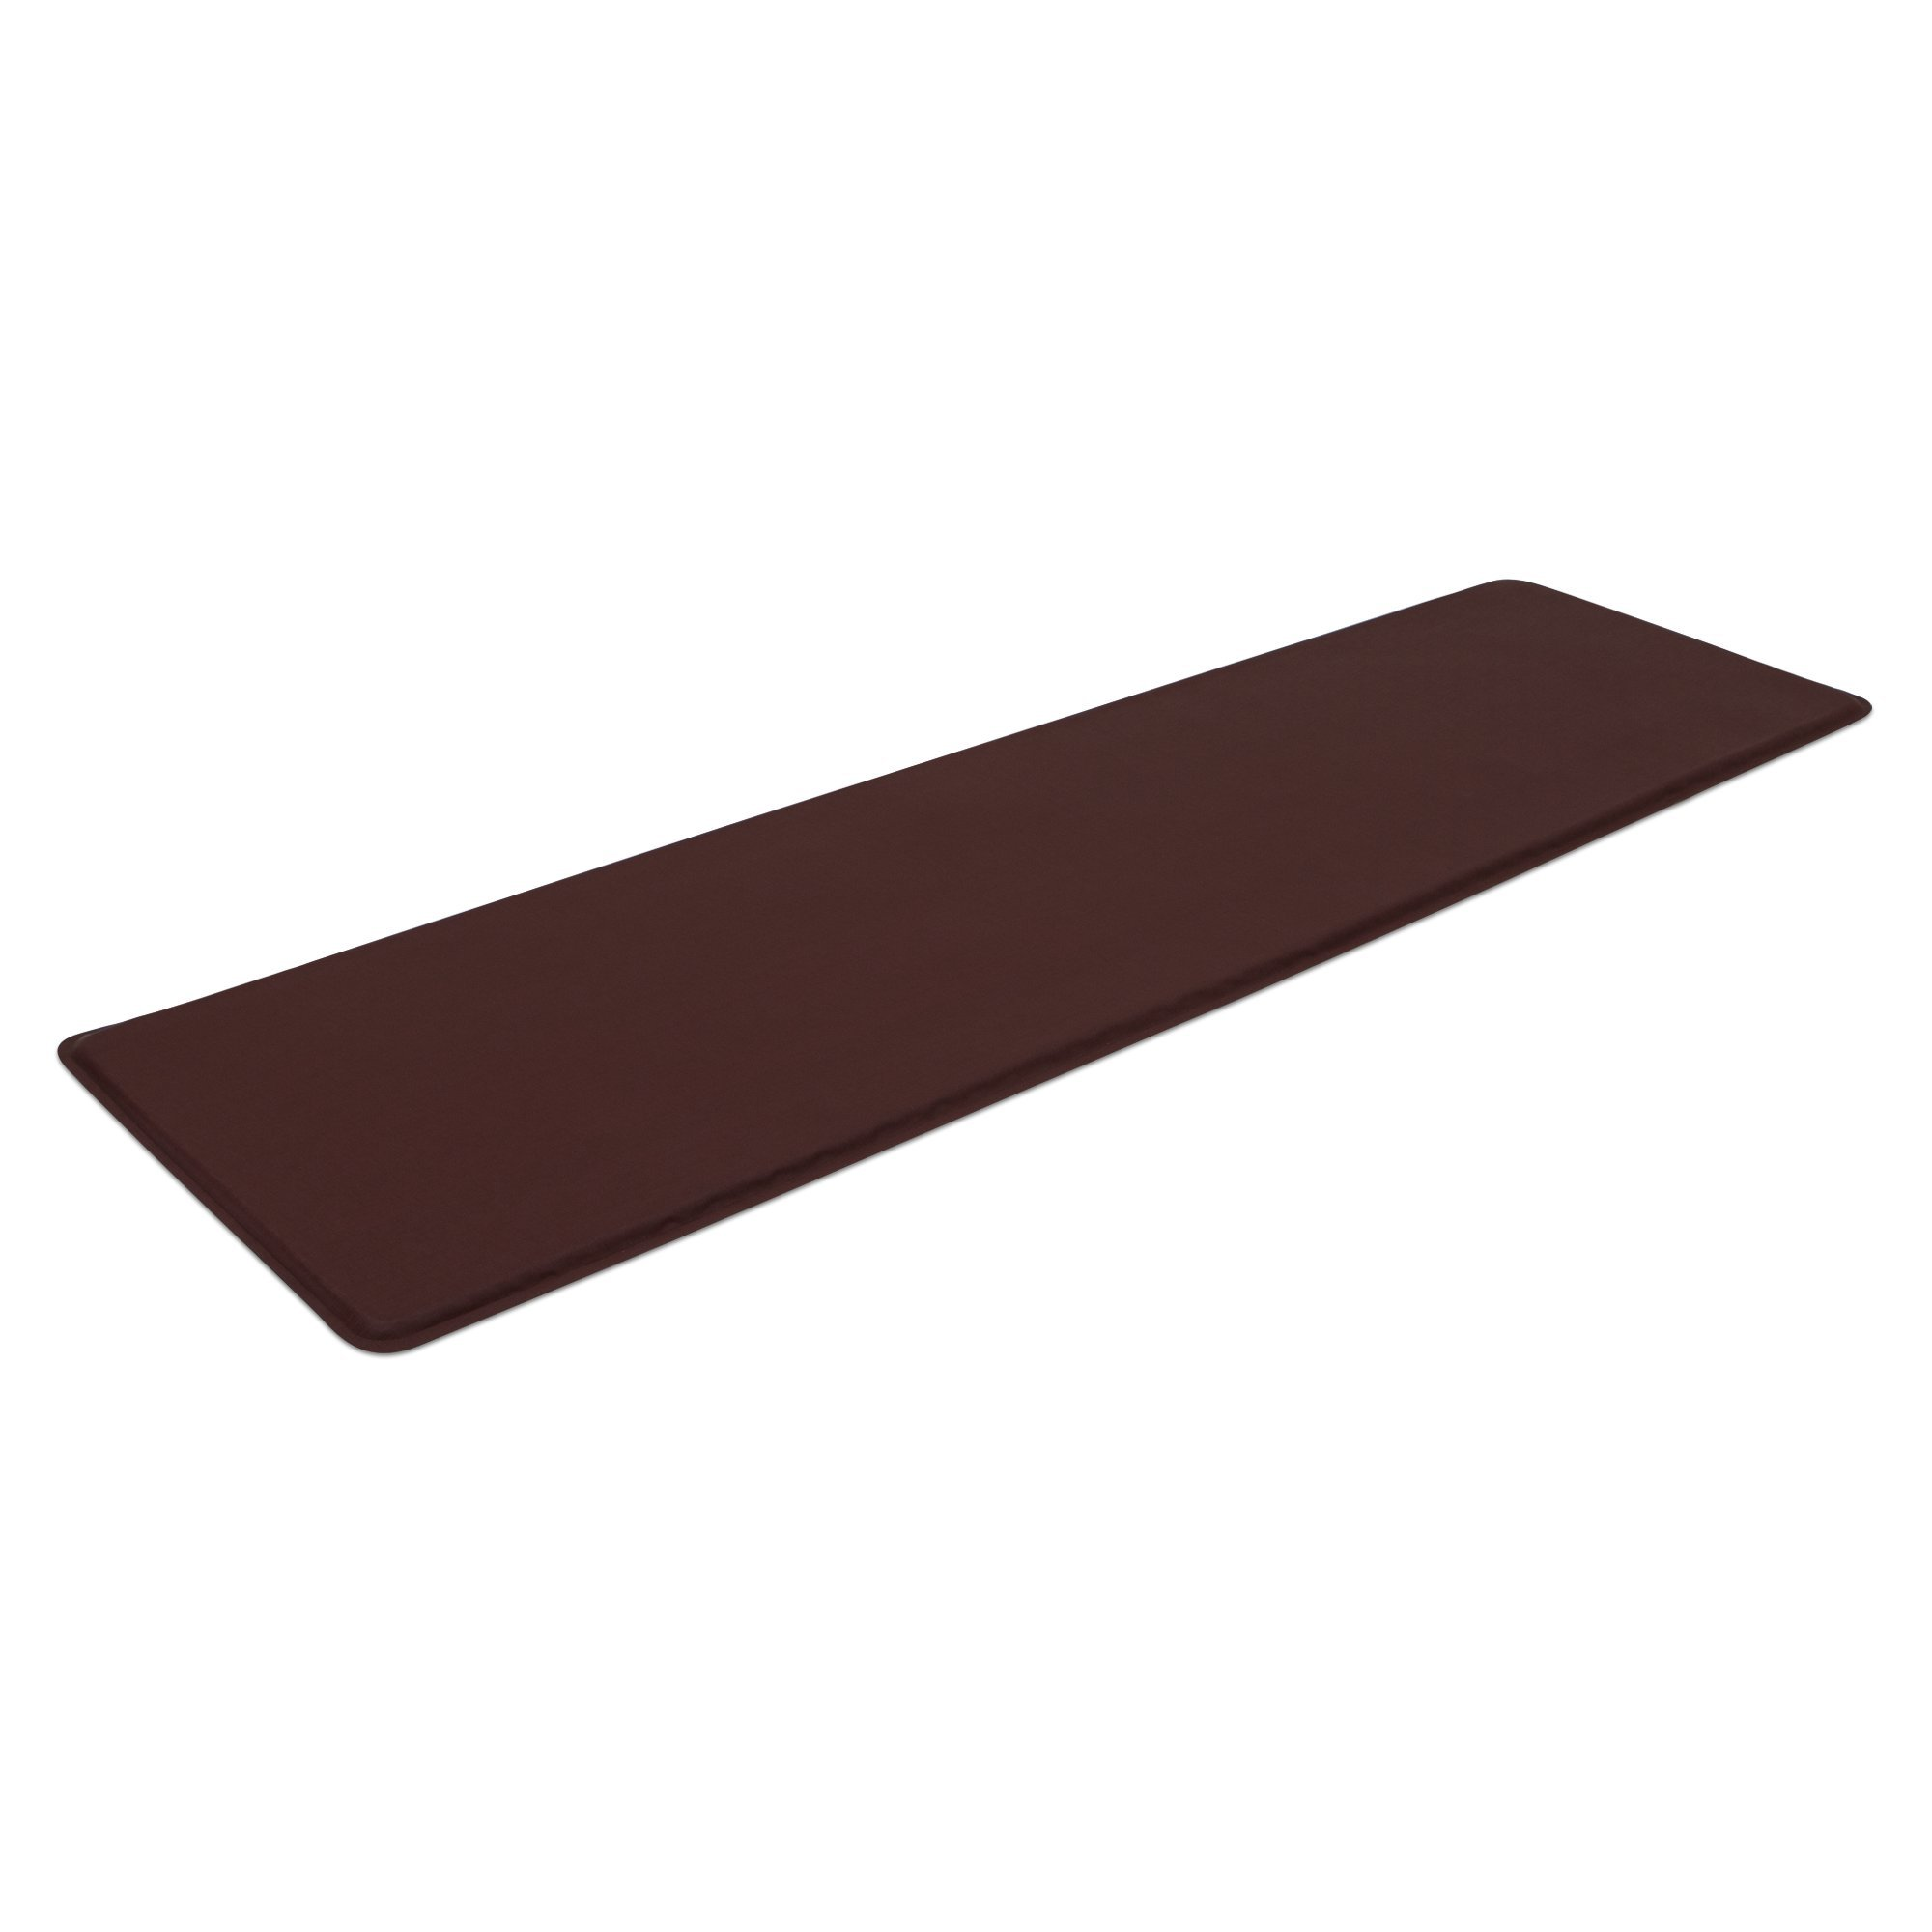 """GelPro Classic Anti-Fatigue Kitchen Comfort Chef Floor Mat, 20x72"""", Linen Cardinal Stain Resistant Surface with ½"""" gel core for health & wellness by GelPro (Image #2)"""